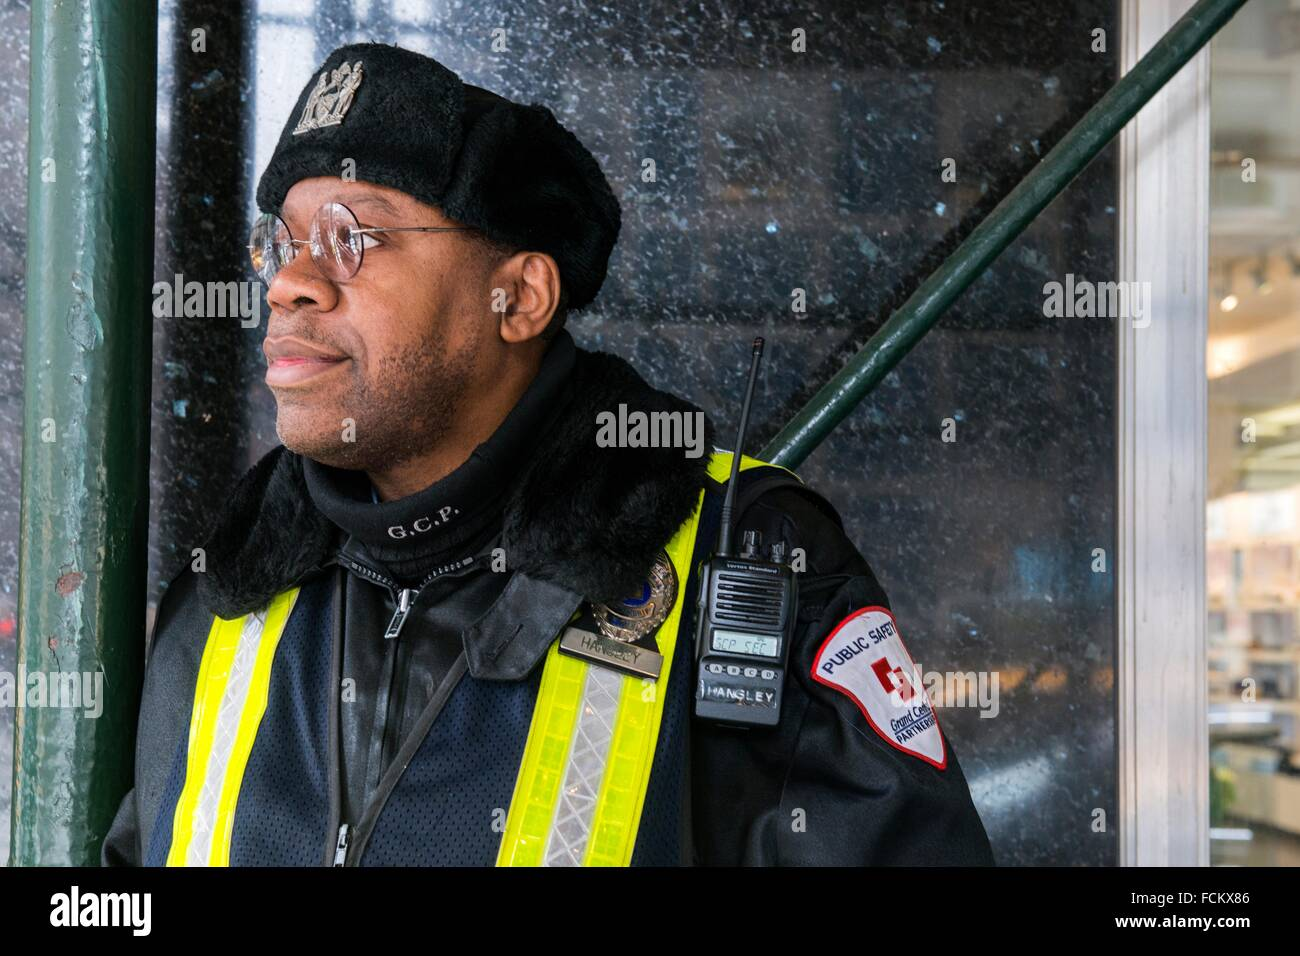 New York, USA. African American security guard on the lookout at Grand Central Station. - Stock Image